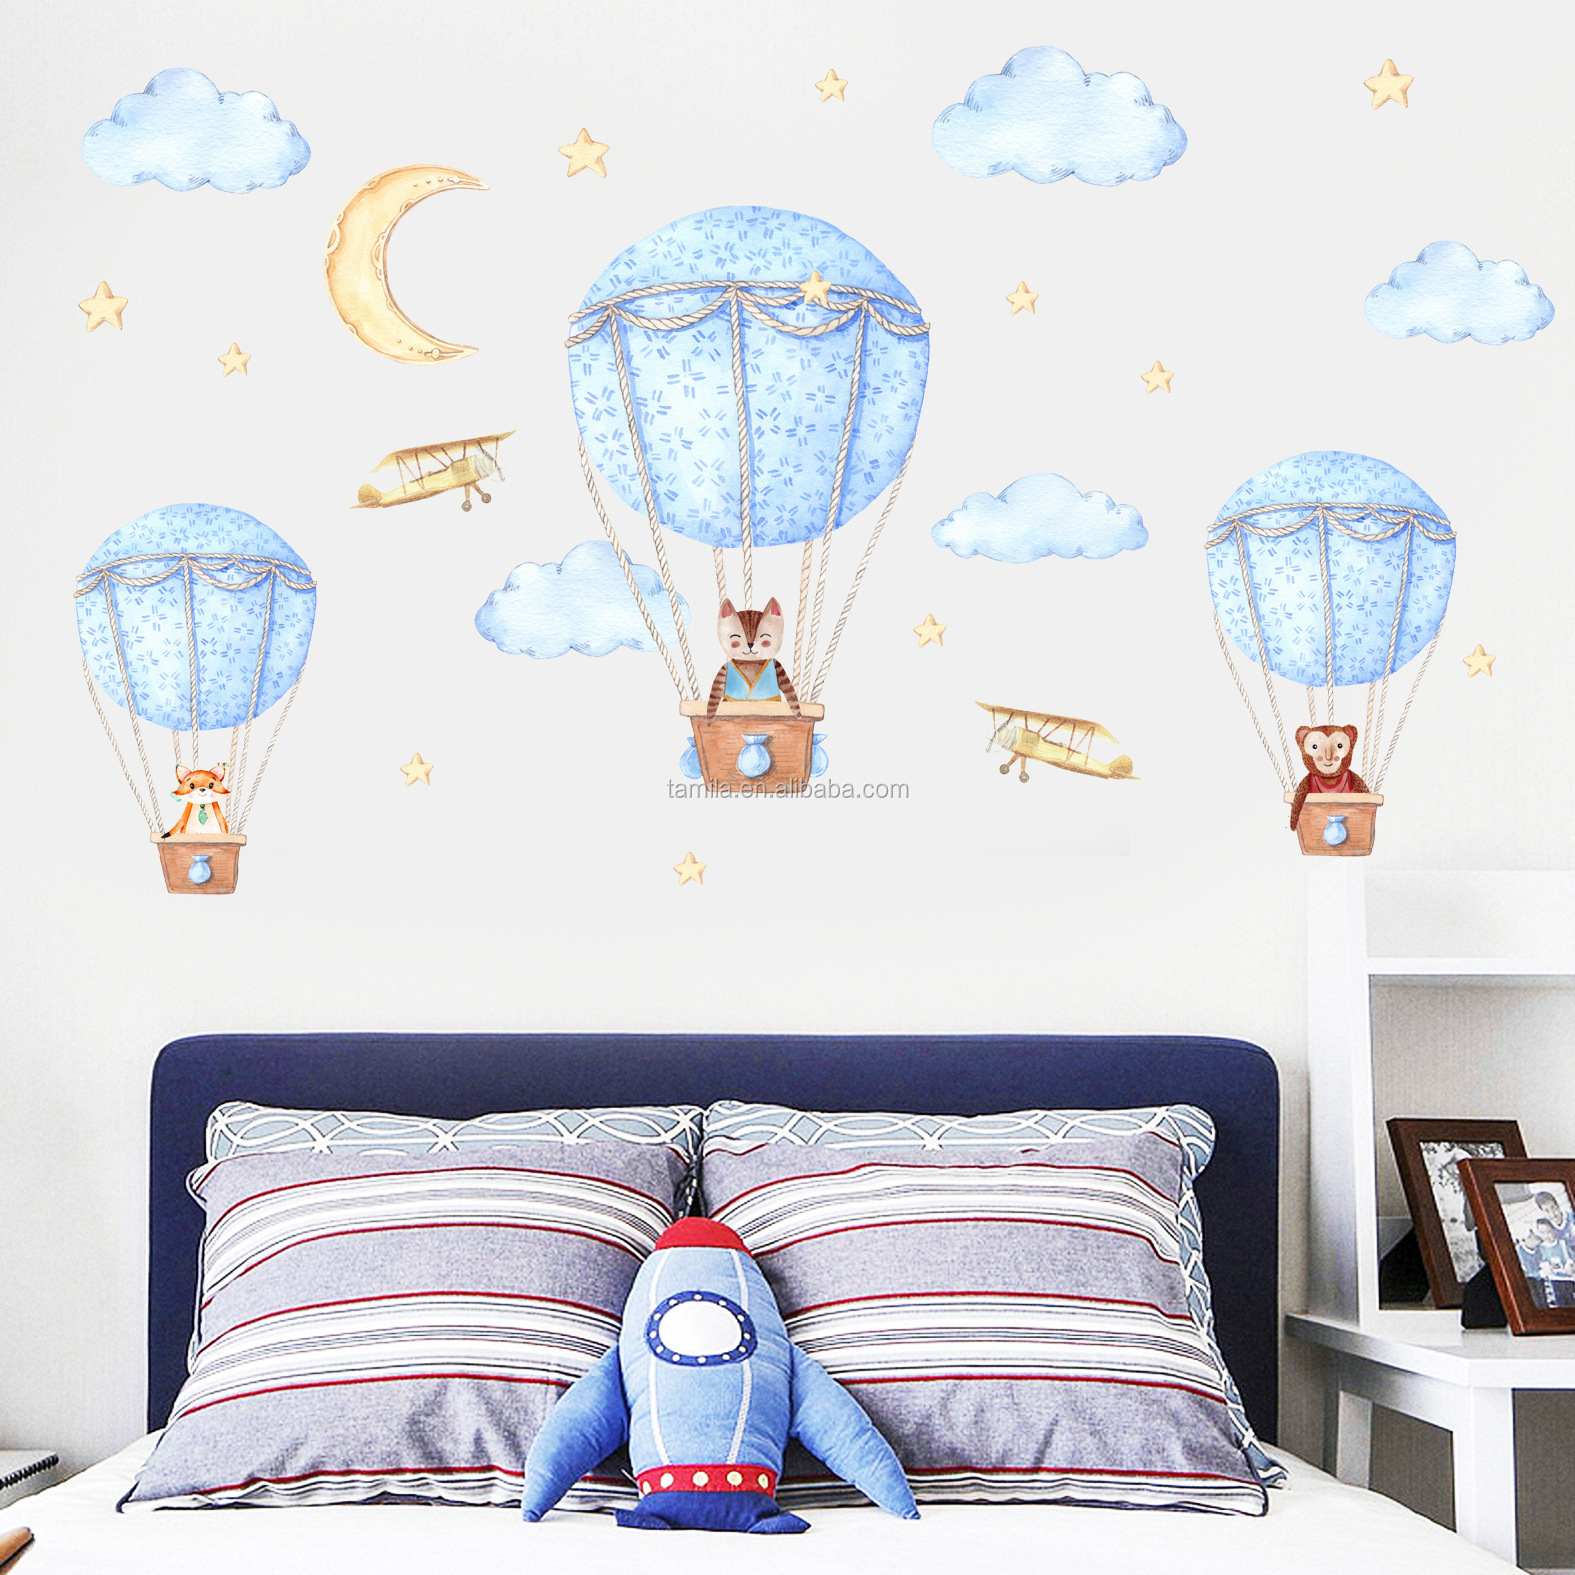 Boys And Girls Baby Room Cartoon Hot Air Balloons Clouds Wall Stickers